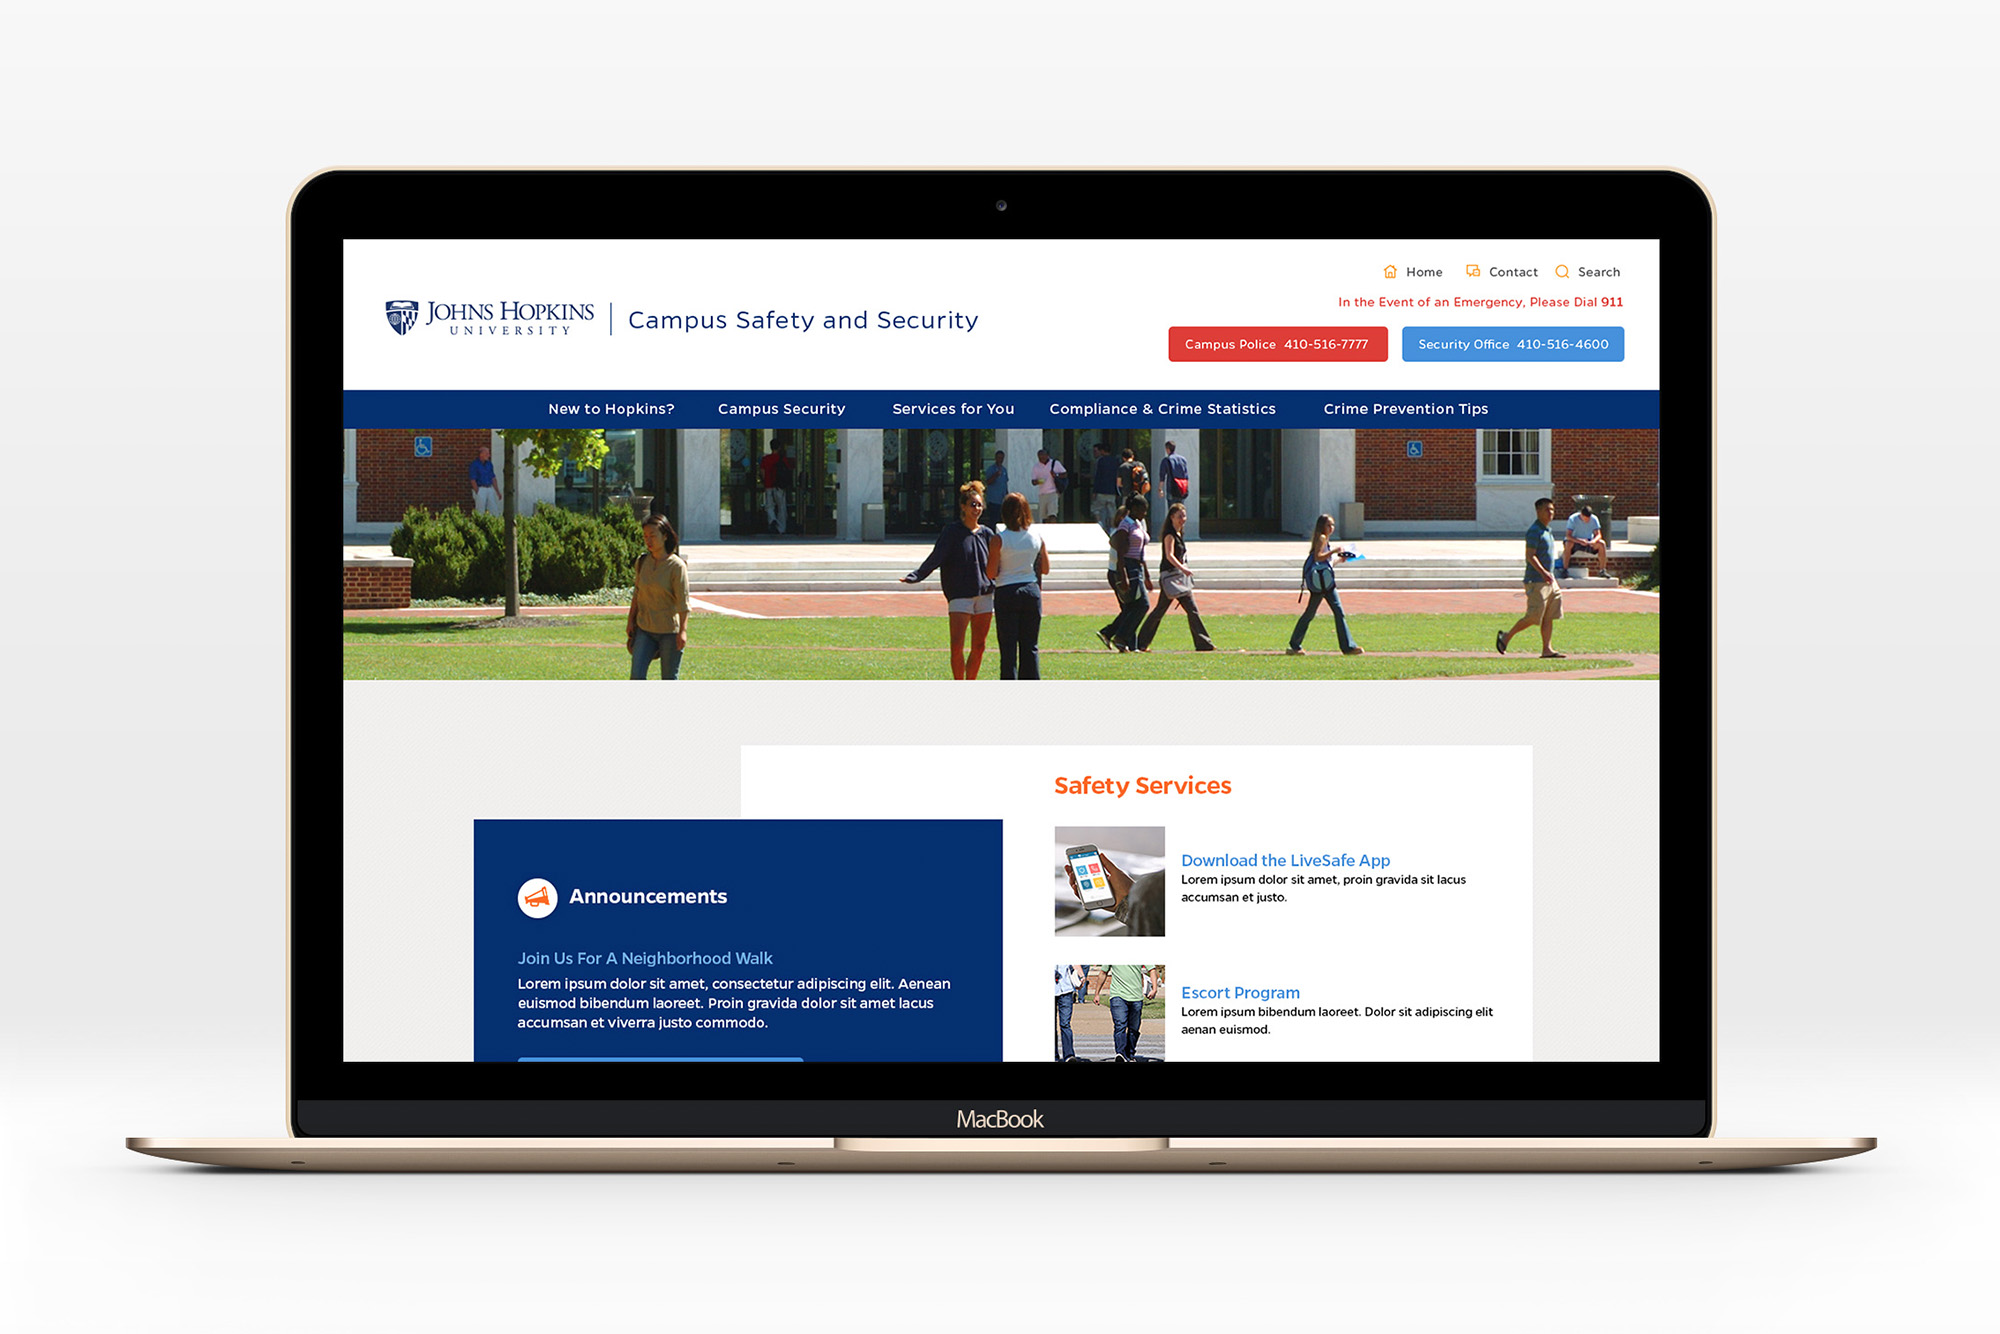 homepage mockup of johns hopkins university campus safety website on laptop